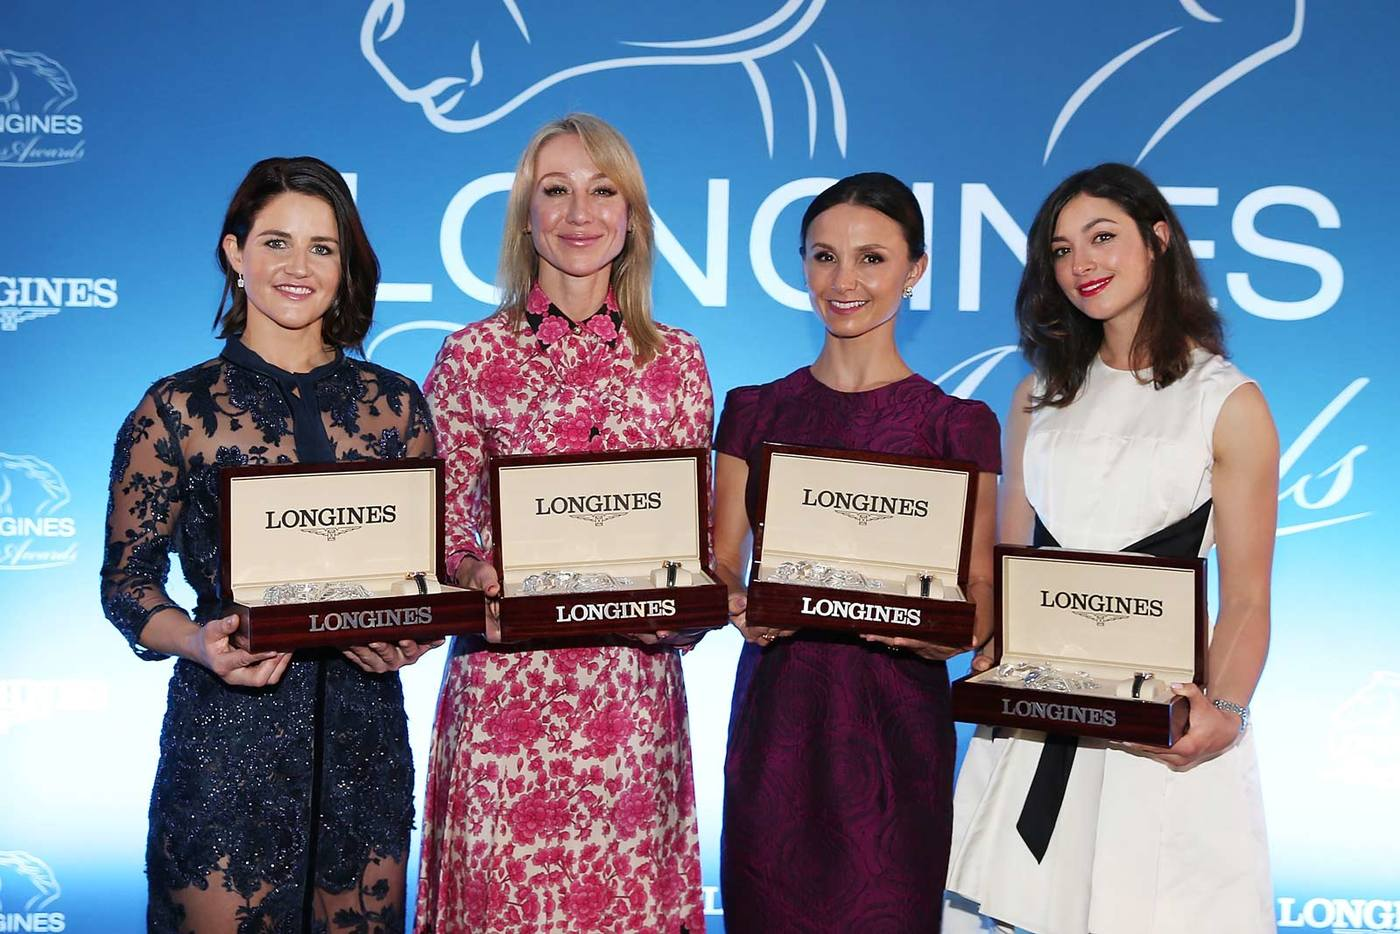 Longines Corporate Event: The Longines Ladies Awards Presented to Four Leading Women in the Equestrian World 7